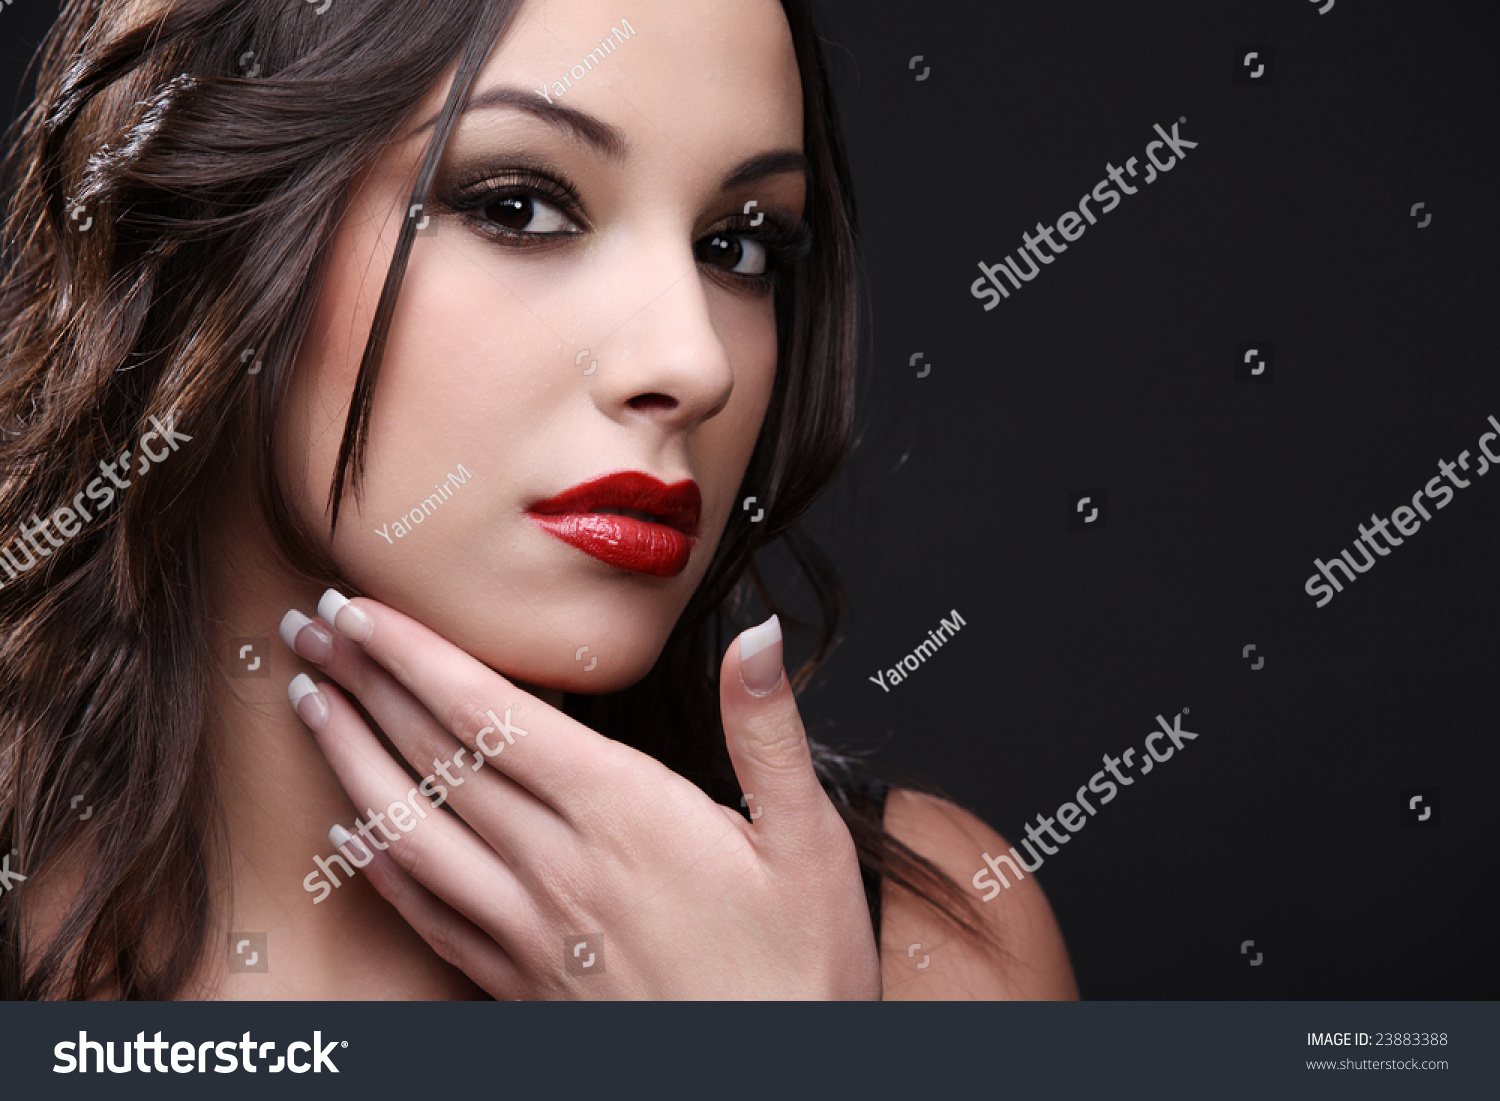 Black dress with red lipstick - Young Cute Woman In Black Dress With Red Lipstick